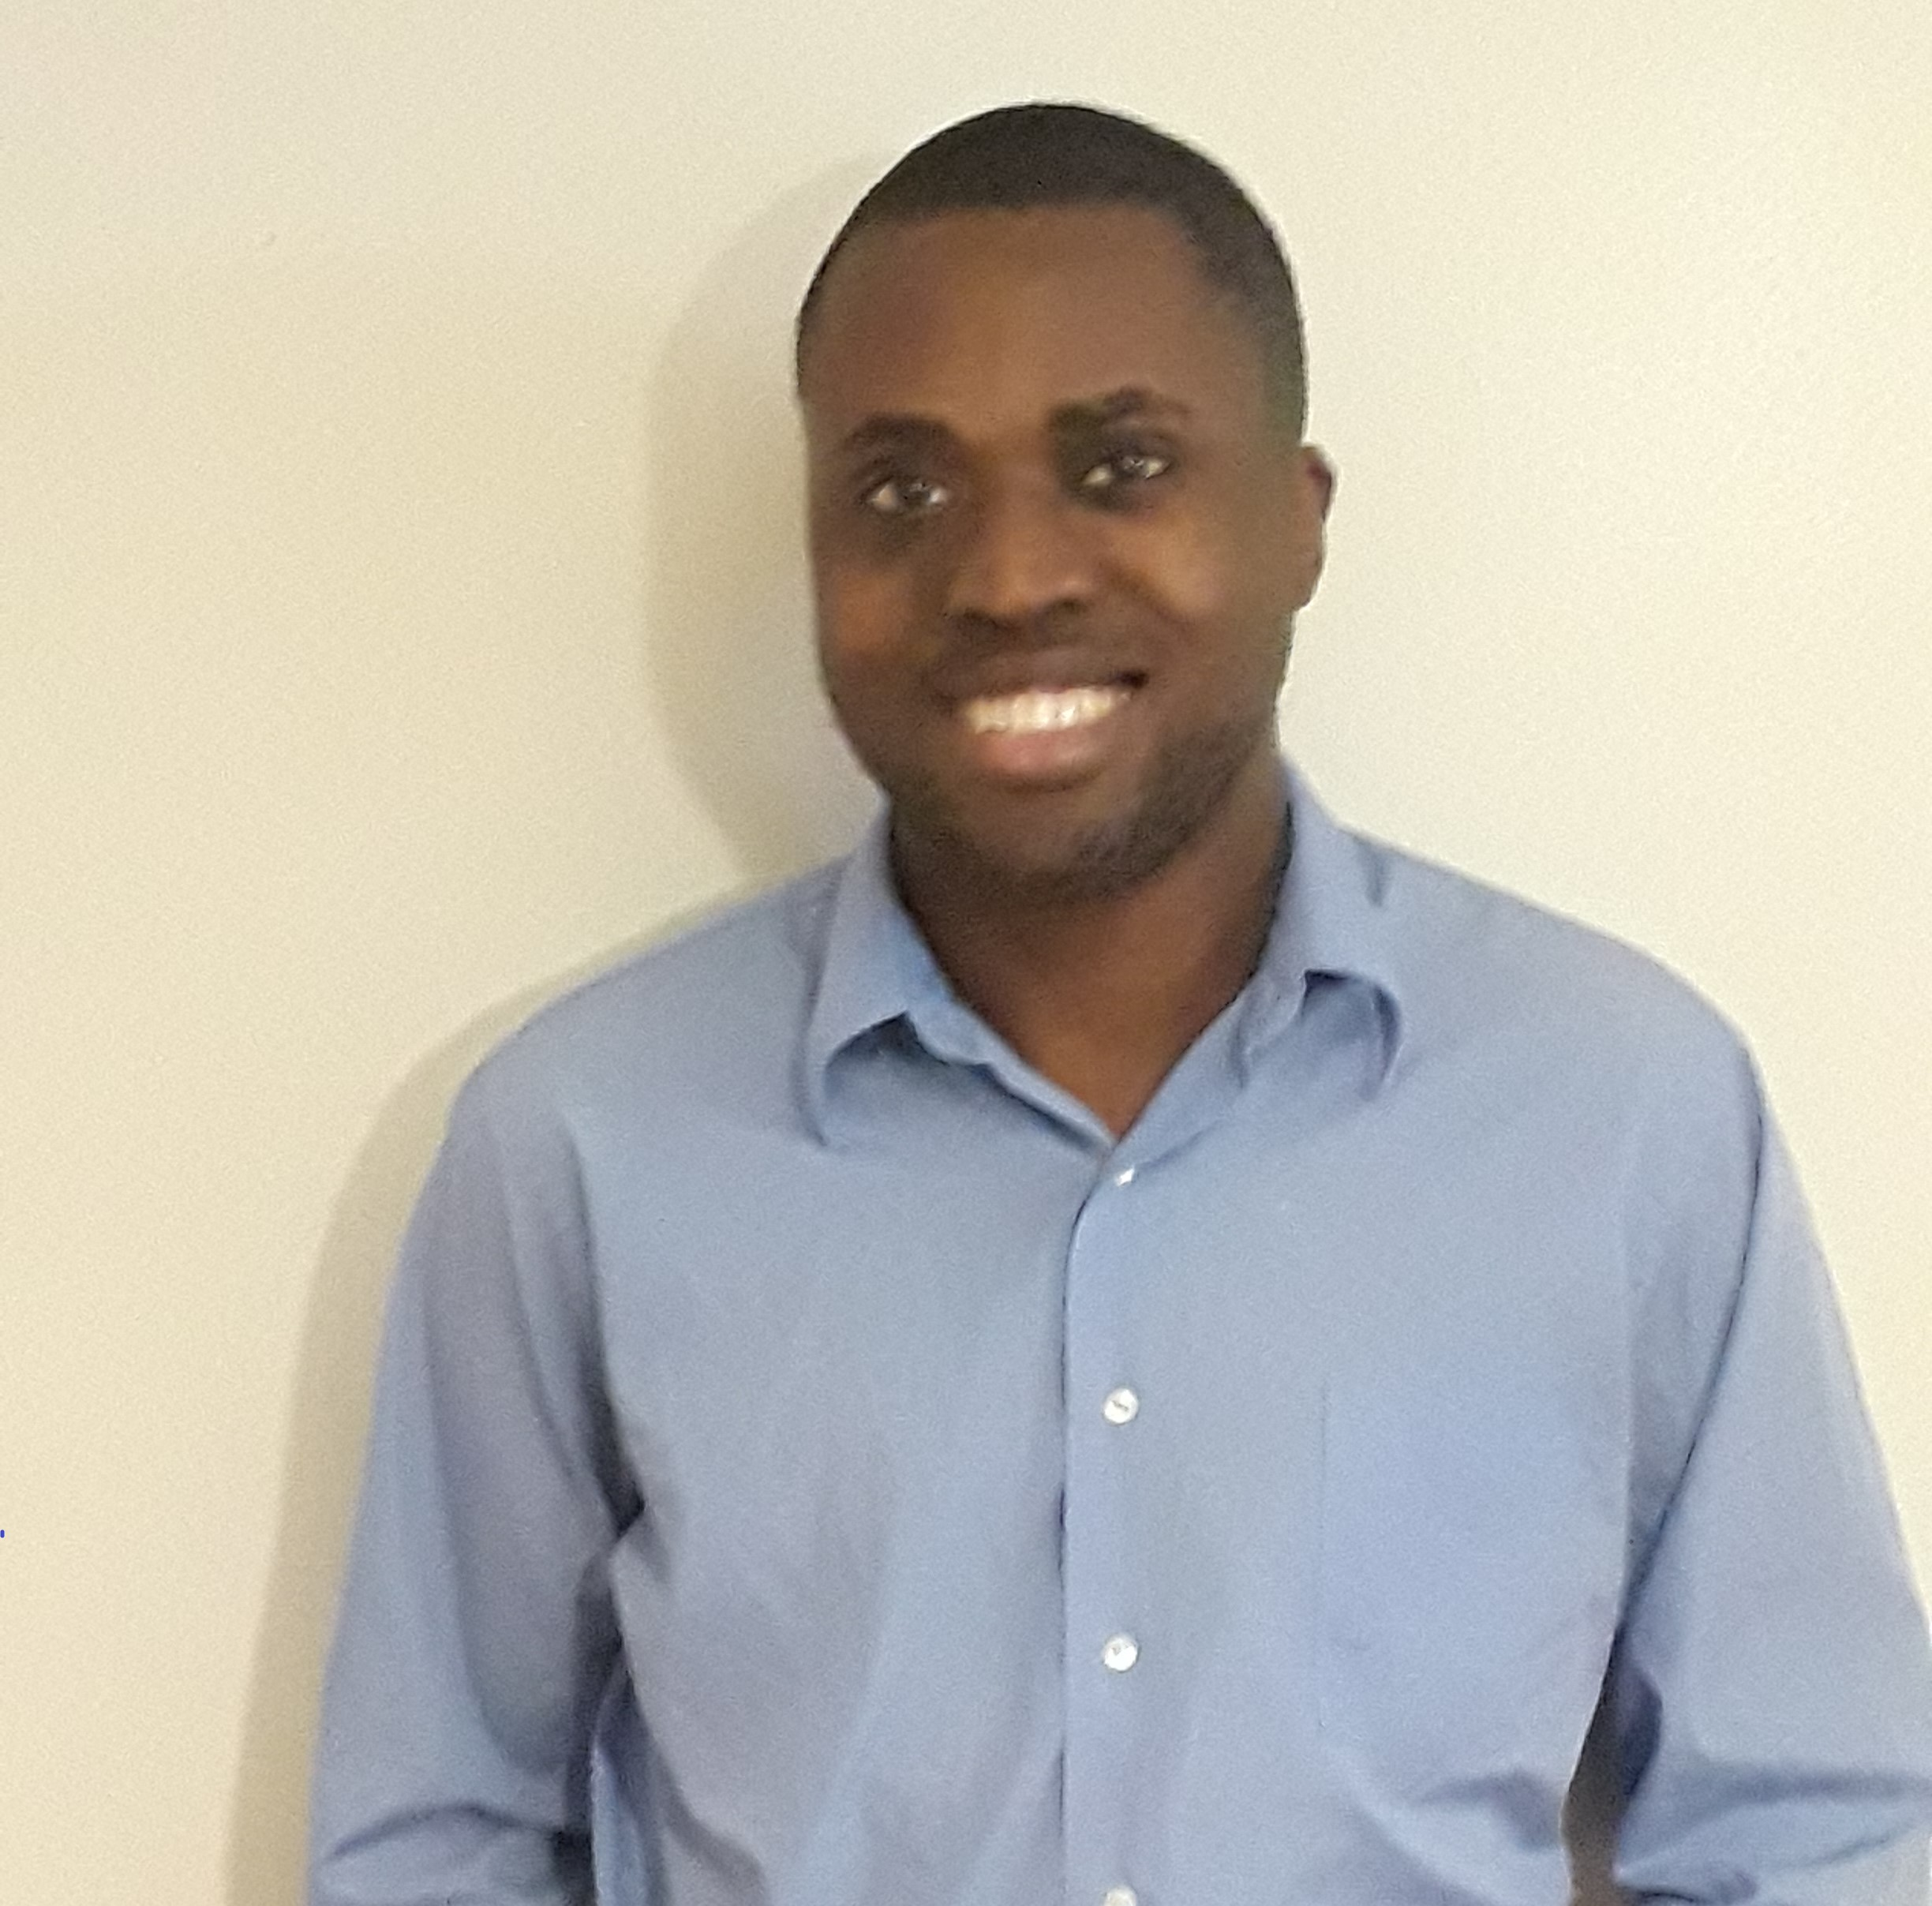 Chuck Okonkwo-Aguolu - Hi my name is Chukwuka, Chuck for short, and I joined Pursuit because I believe it is an amazing opportunity to immerse myself in the world of programming and learn how to build all sorts of interesting ideas. I hope to gain the tools needed to both jumpstart a career in programming as well as to gain the ability to build the many ideas I have for apps and websites. I am a huge fan of basketball and video games , and I once maintained a blog for people who liked the statistical side of basketball.